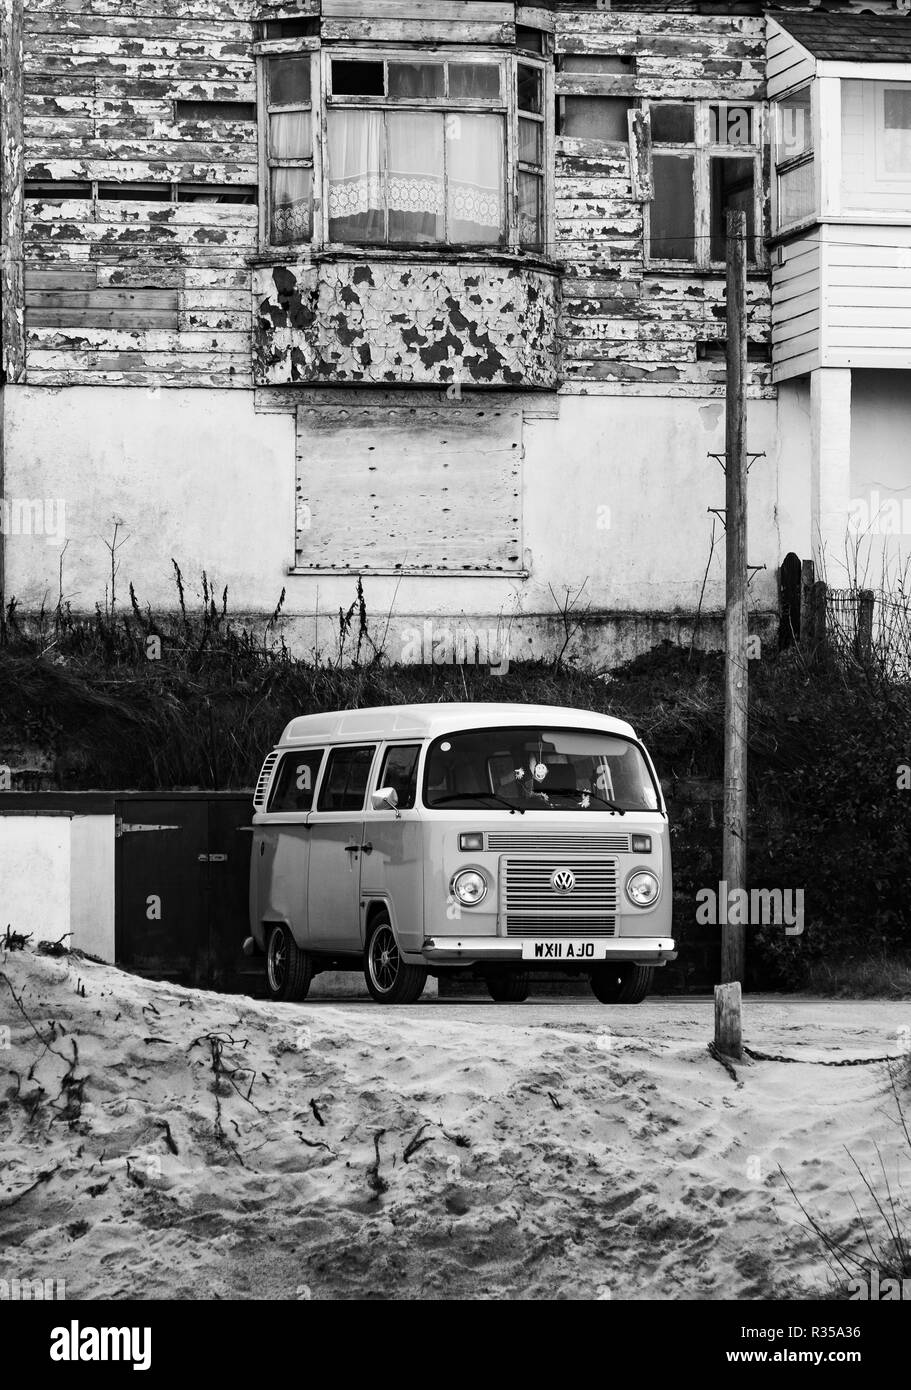 Vintage VW camper parked up in front of an old bay windowed, two storey building near the seafront of Portreath. - Stock Image